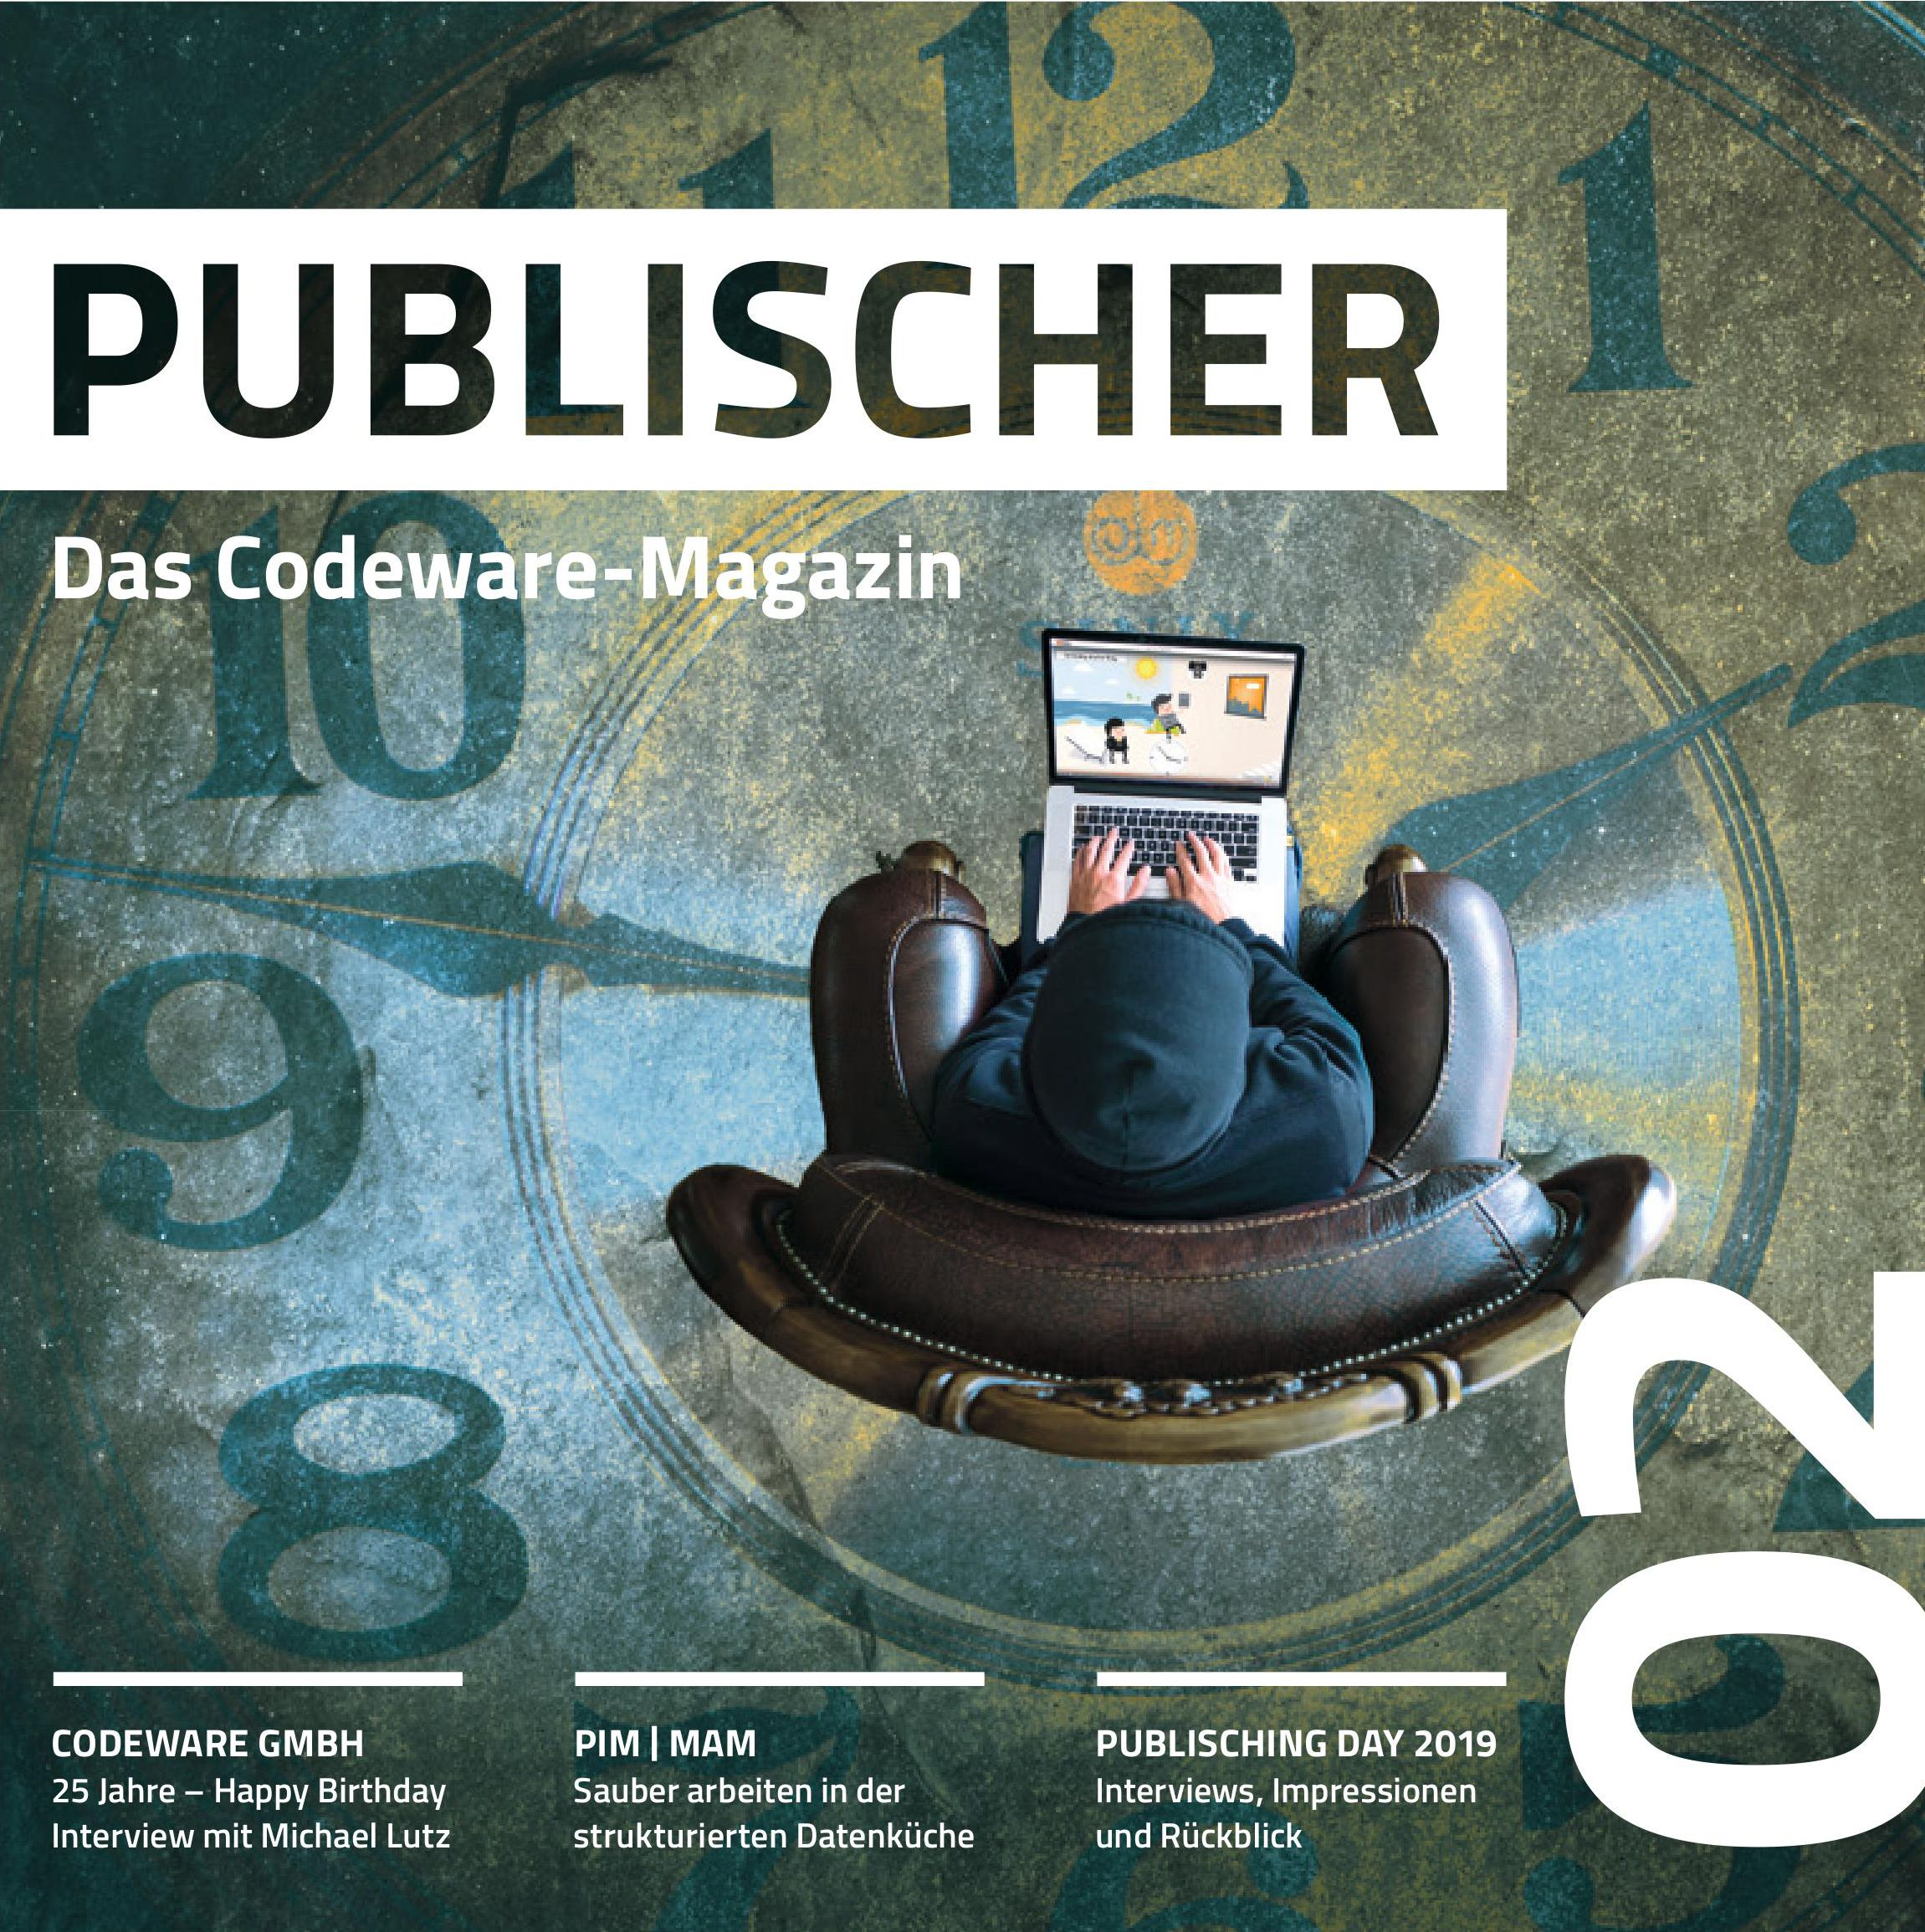 Codeware Publischer 2020